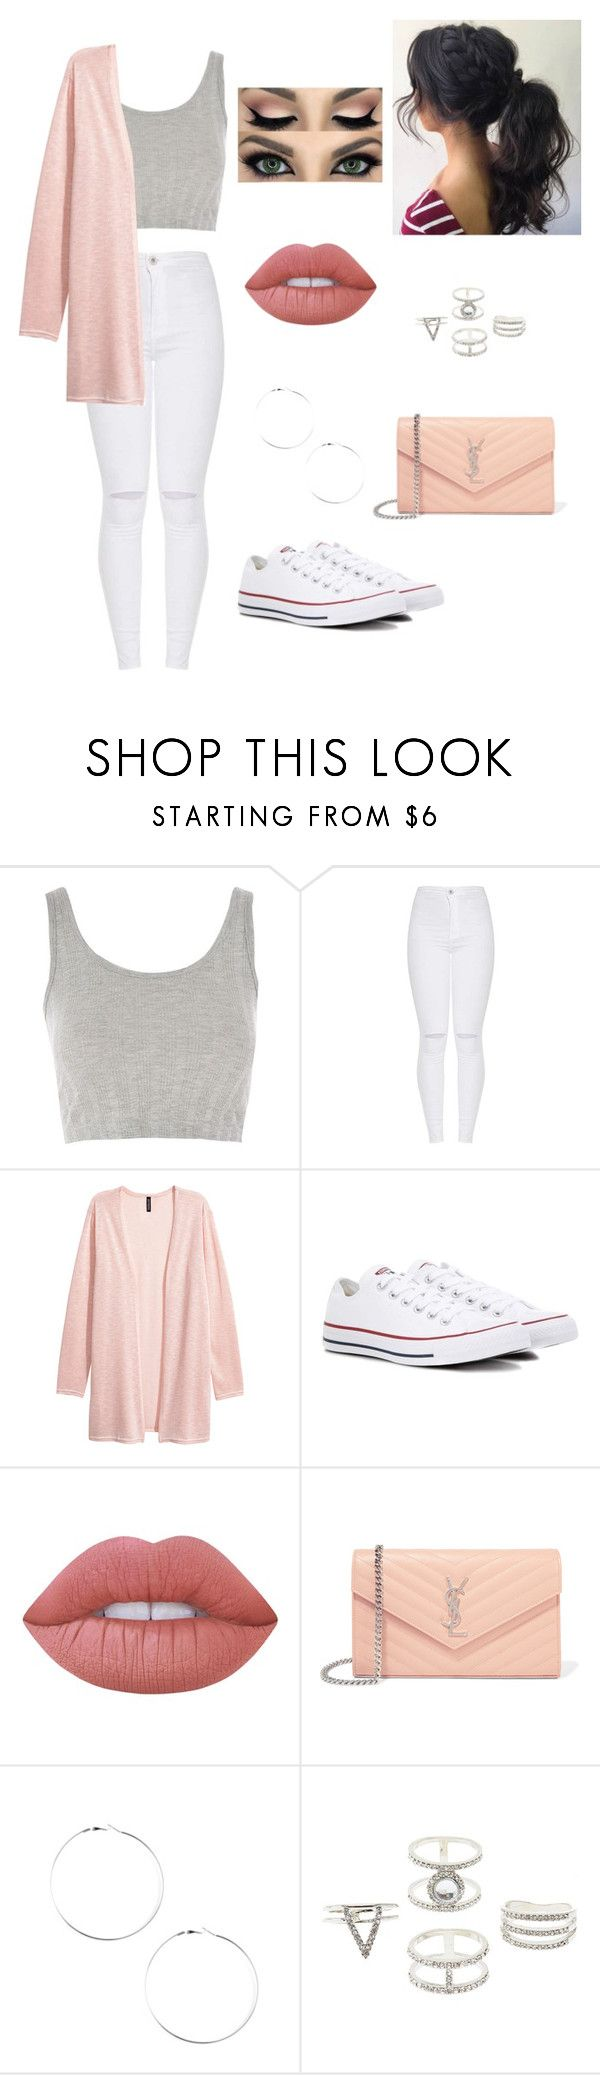 """Untitled #49"" by blossom03 ❤ liked on Polyvore featuring Topshop, Converse, Lime Crime, Yves Saint Laurent and Charlotte Russe"